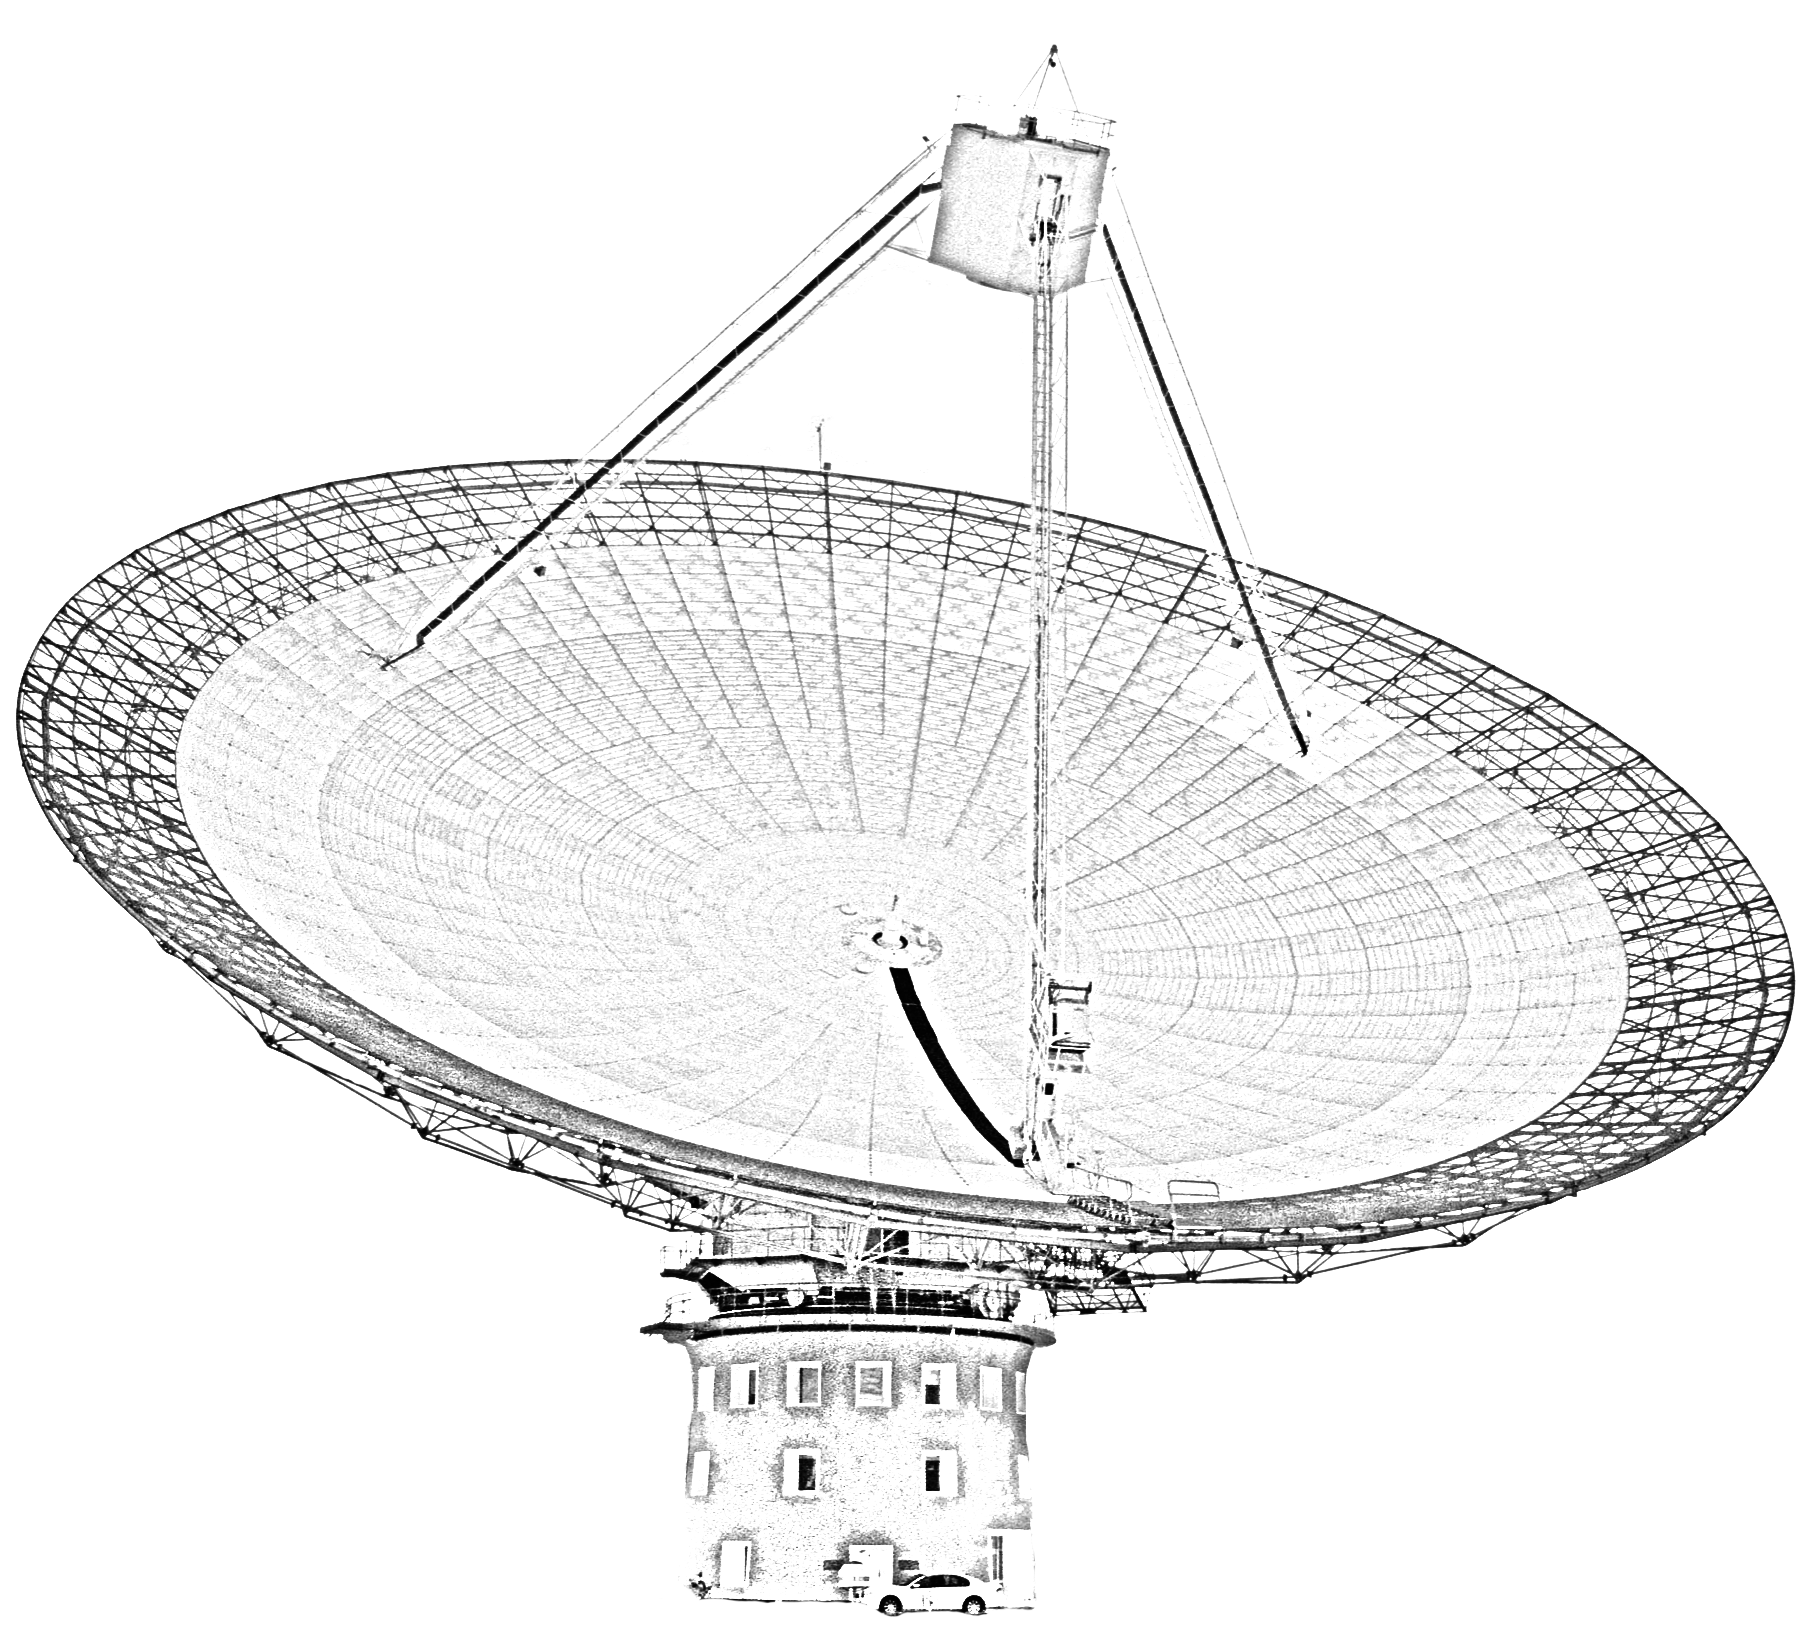 photo of the dish at Parkes